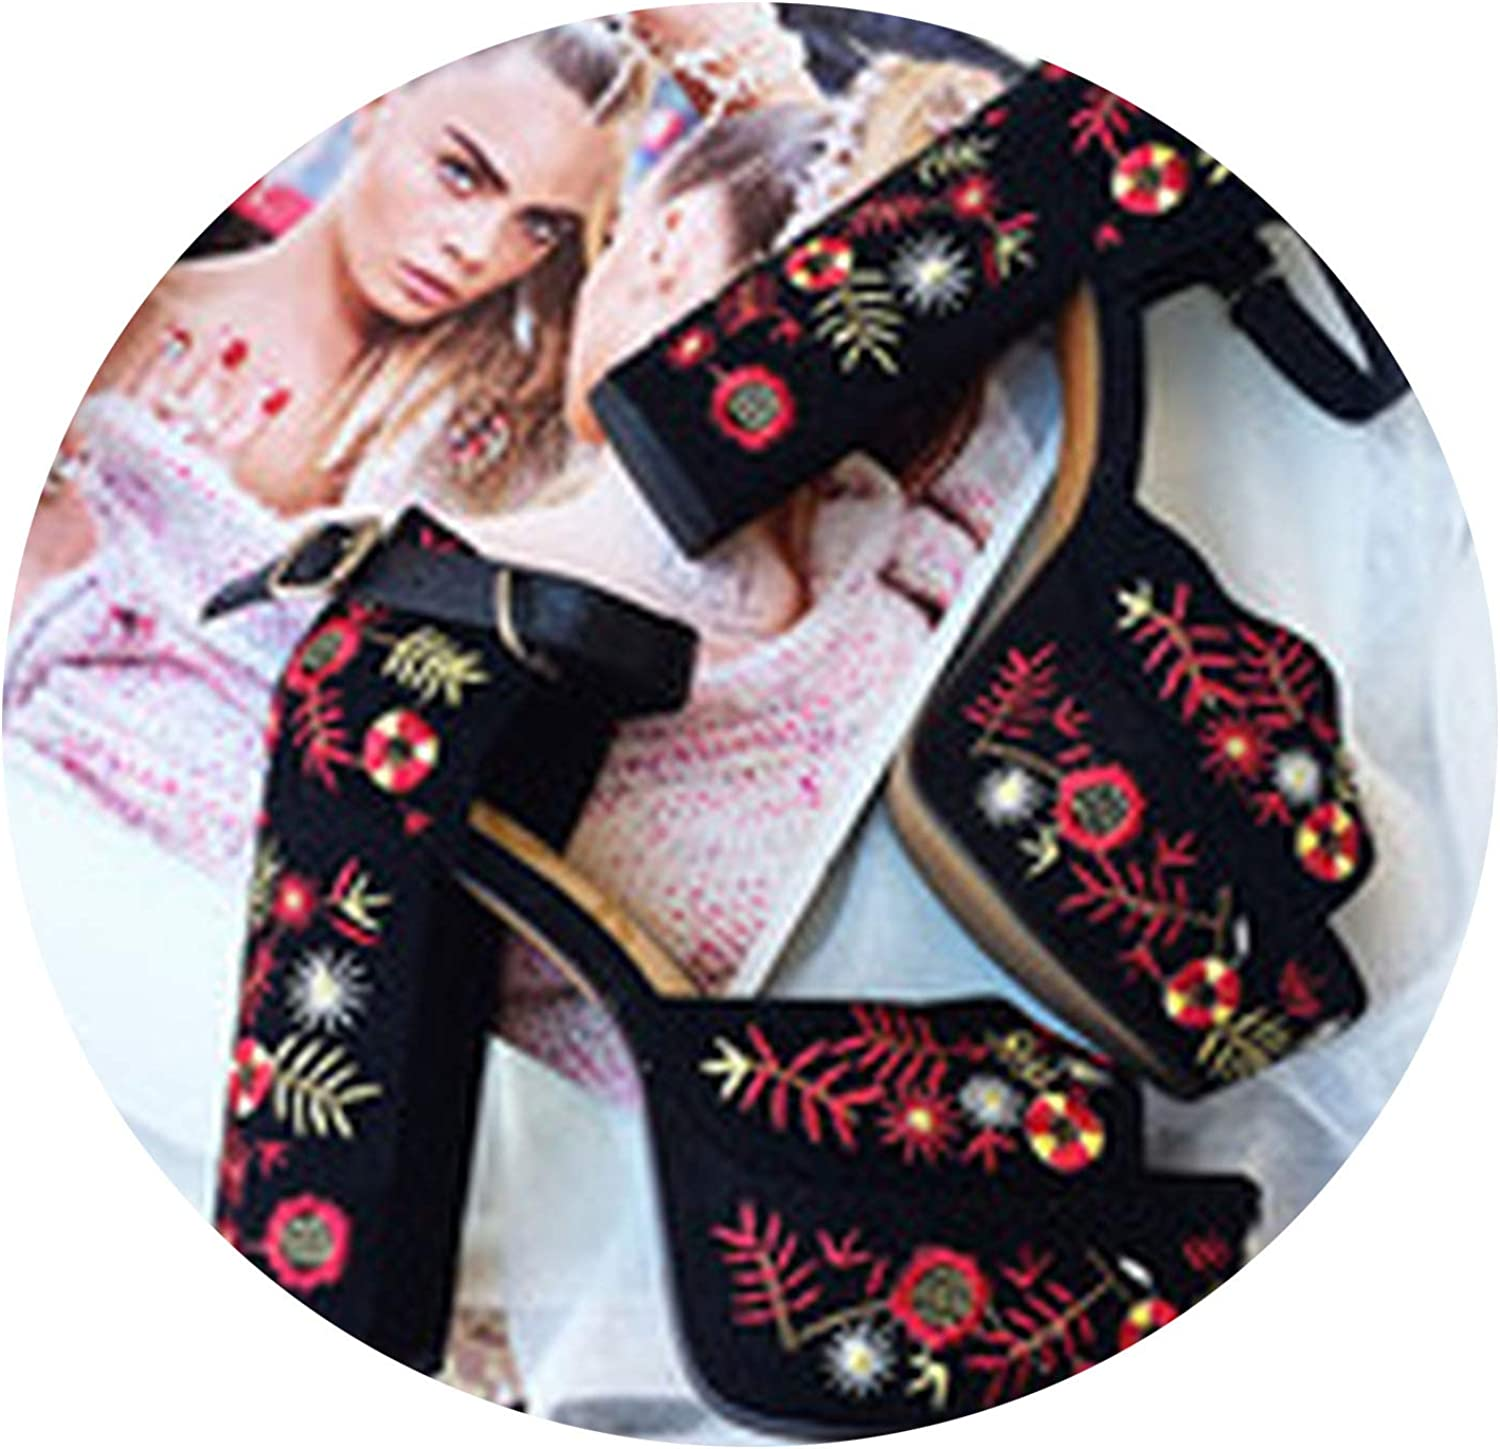 Outcome1 Embroider Sandals shoes Woman Chunky Square Heels Walking shoes Black Kid Suede Embroidered Flowers Sandals